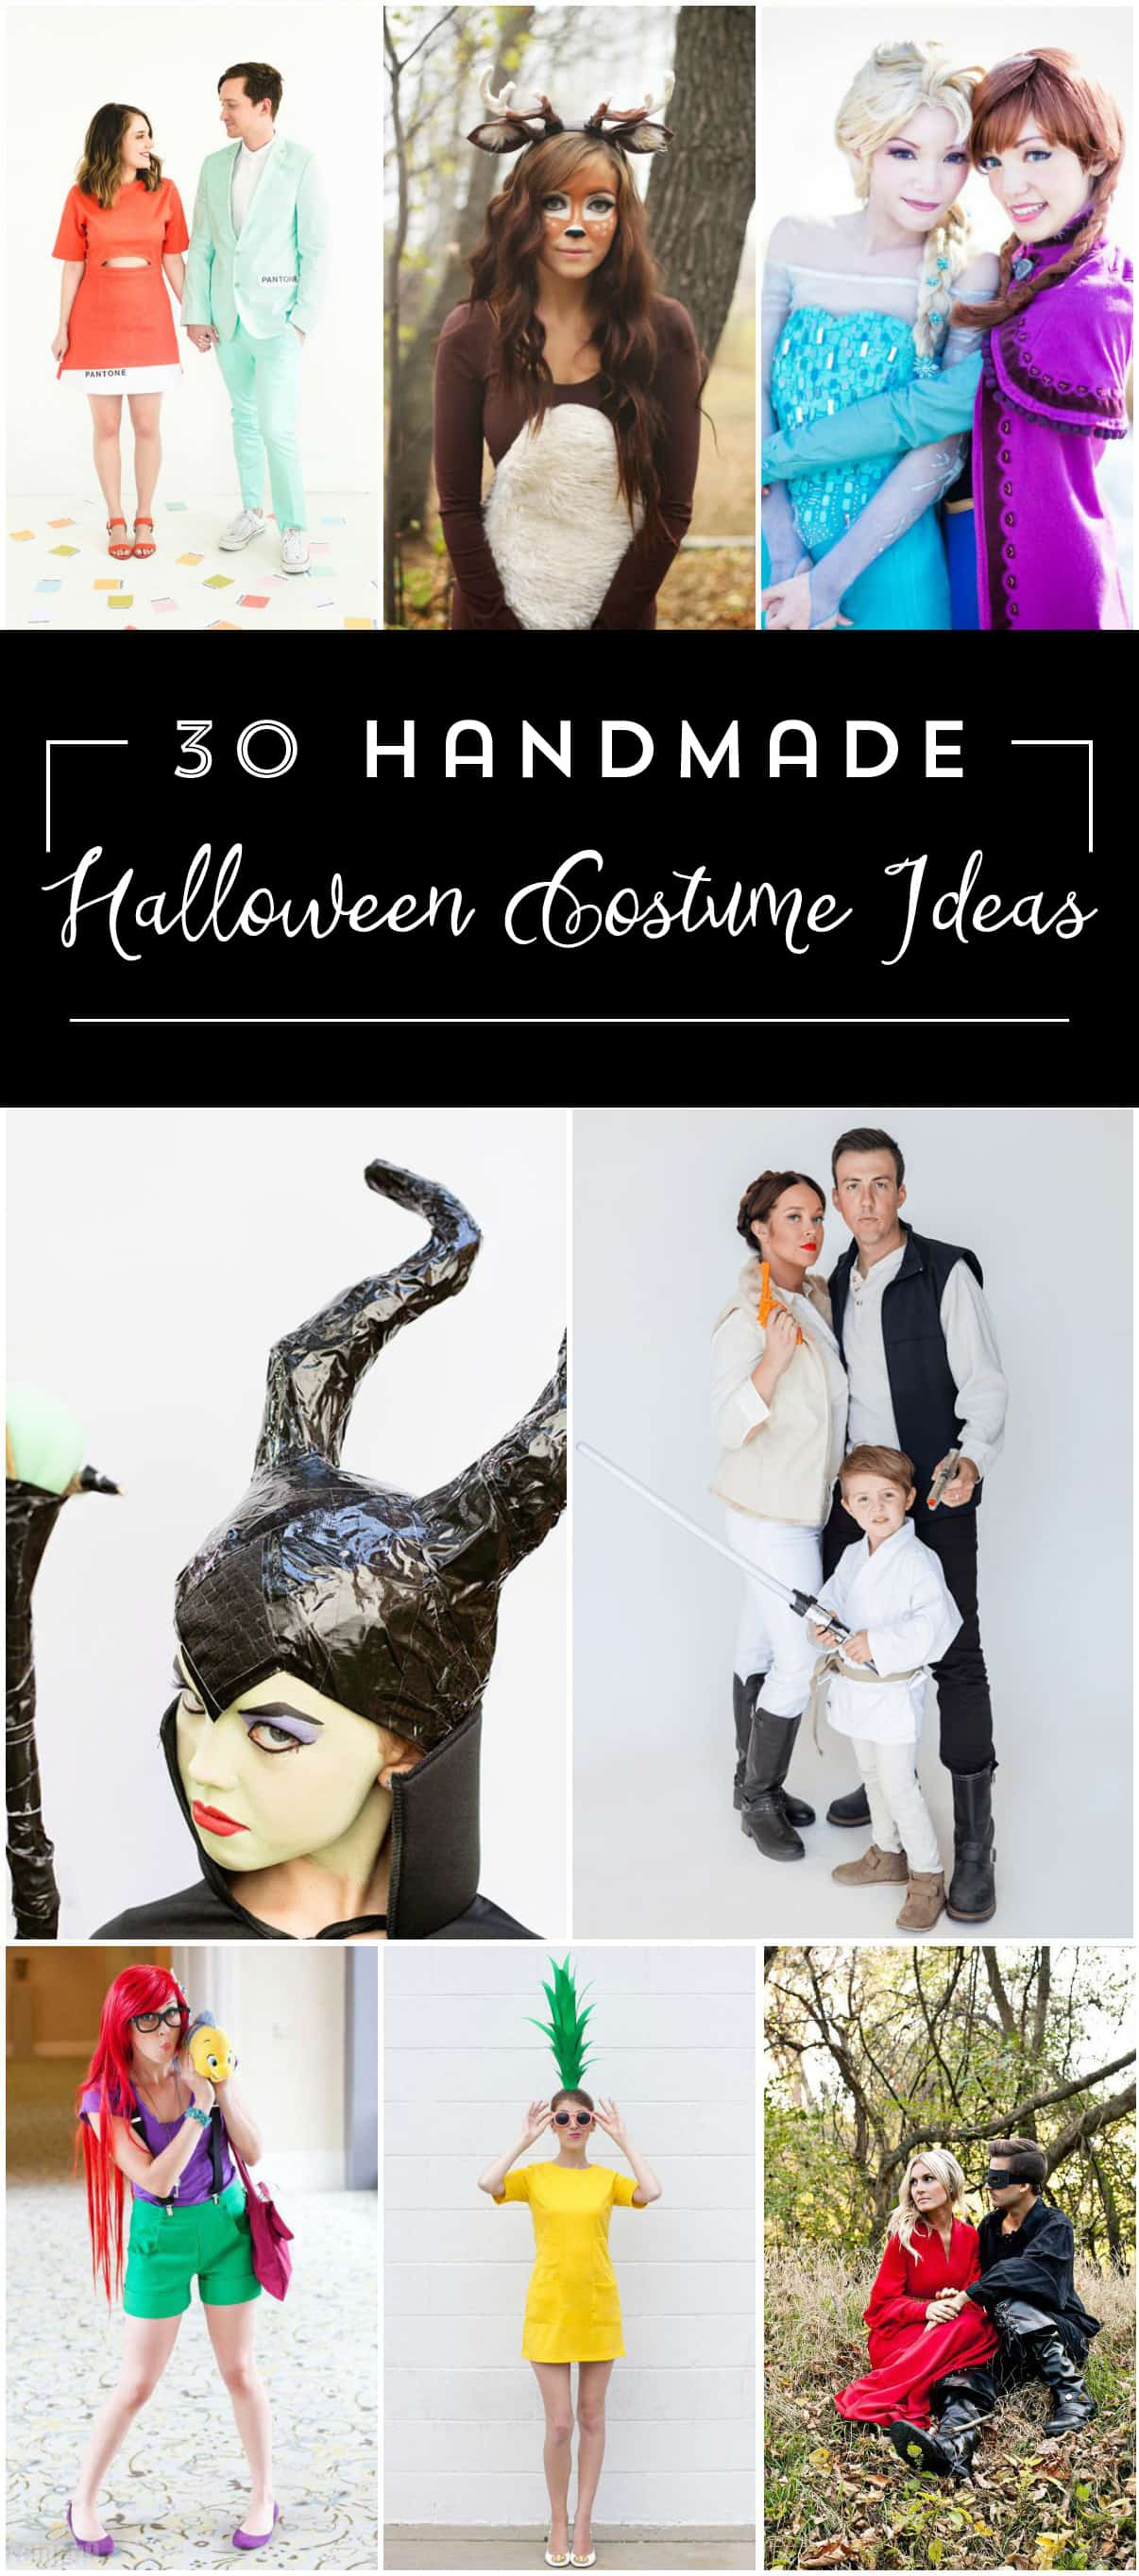 30 Handmade Halloween Costume Ideas